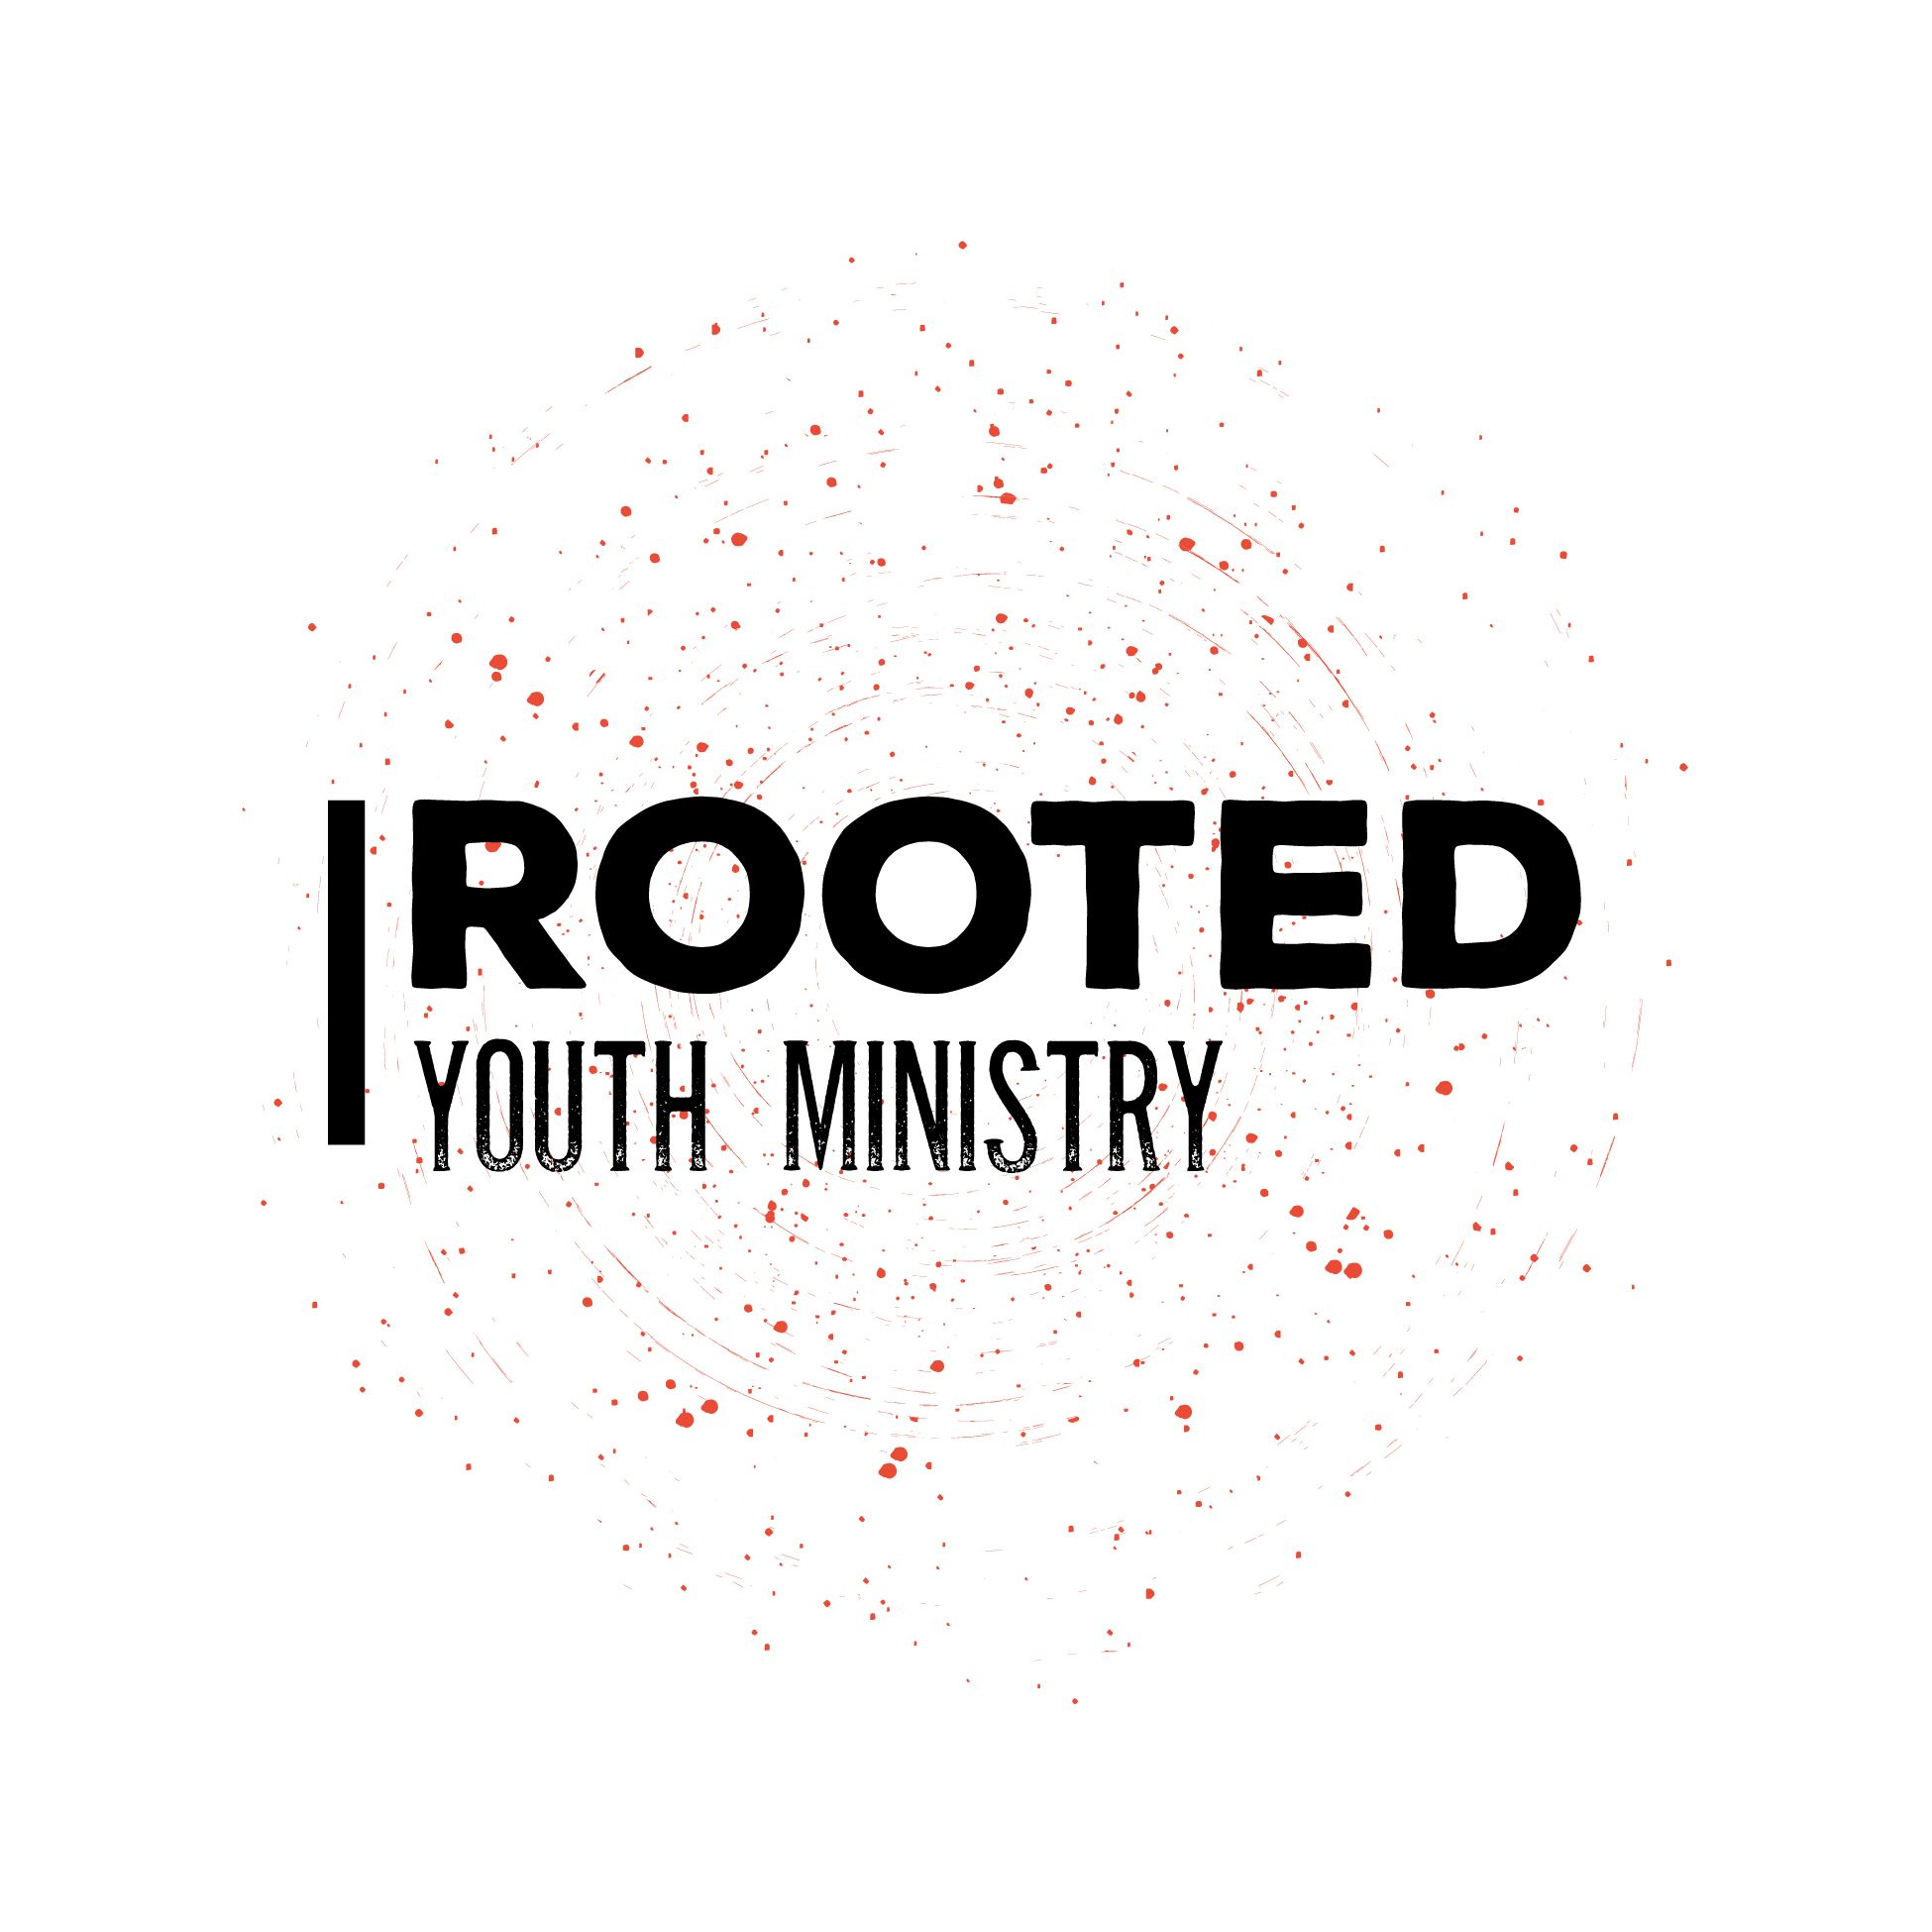 Rooted Youth Ministry - Youth Group Logos | Youth logo ...